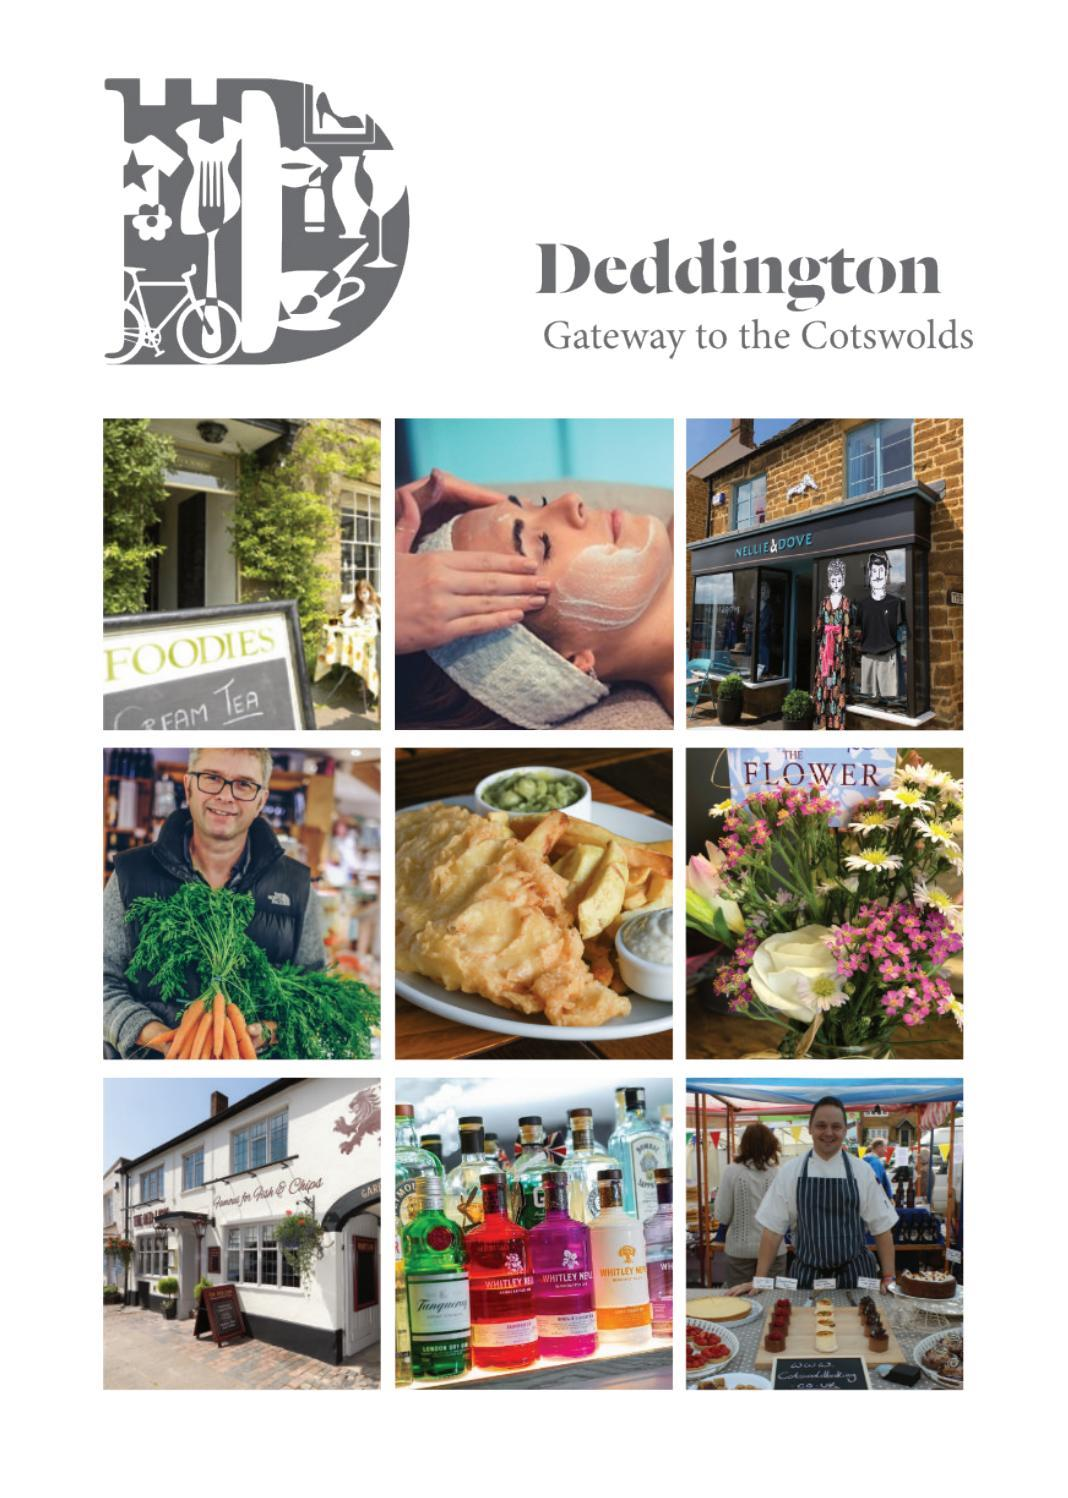 Discover Deddington